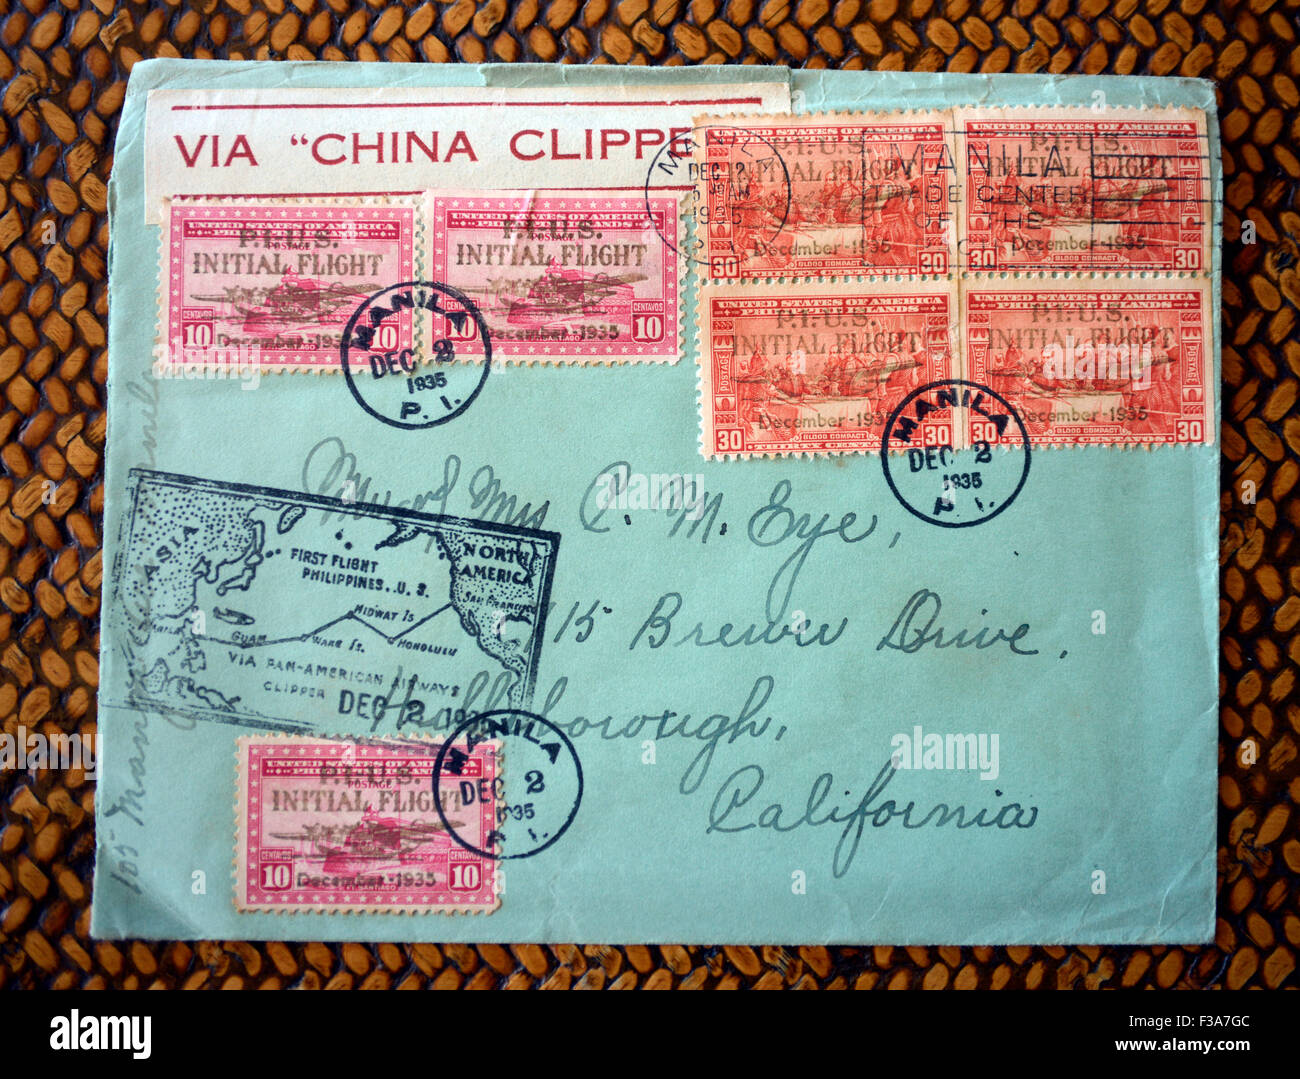 A stamped, postmarked envelope which flew on an early historic flight of the Pan Am China Clipper in 1935 / © - Stock Image